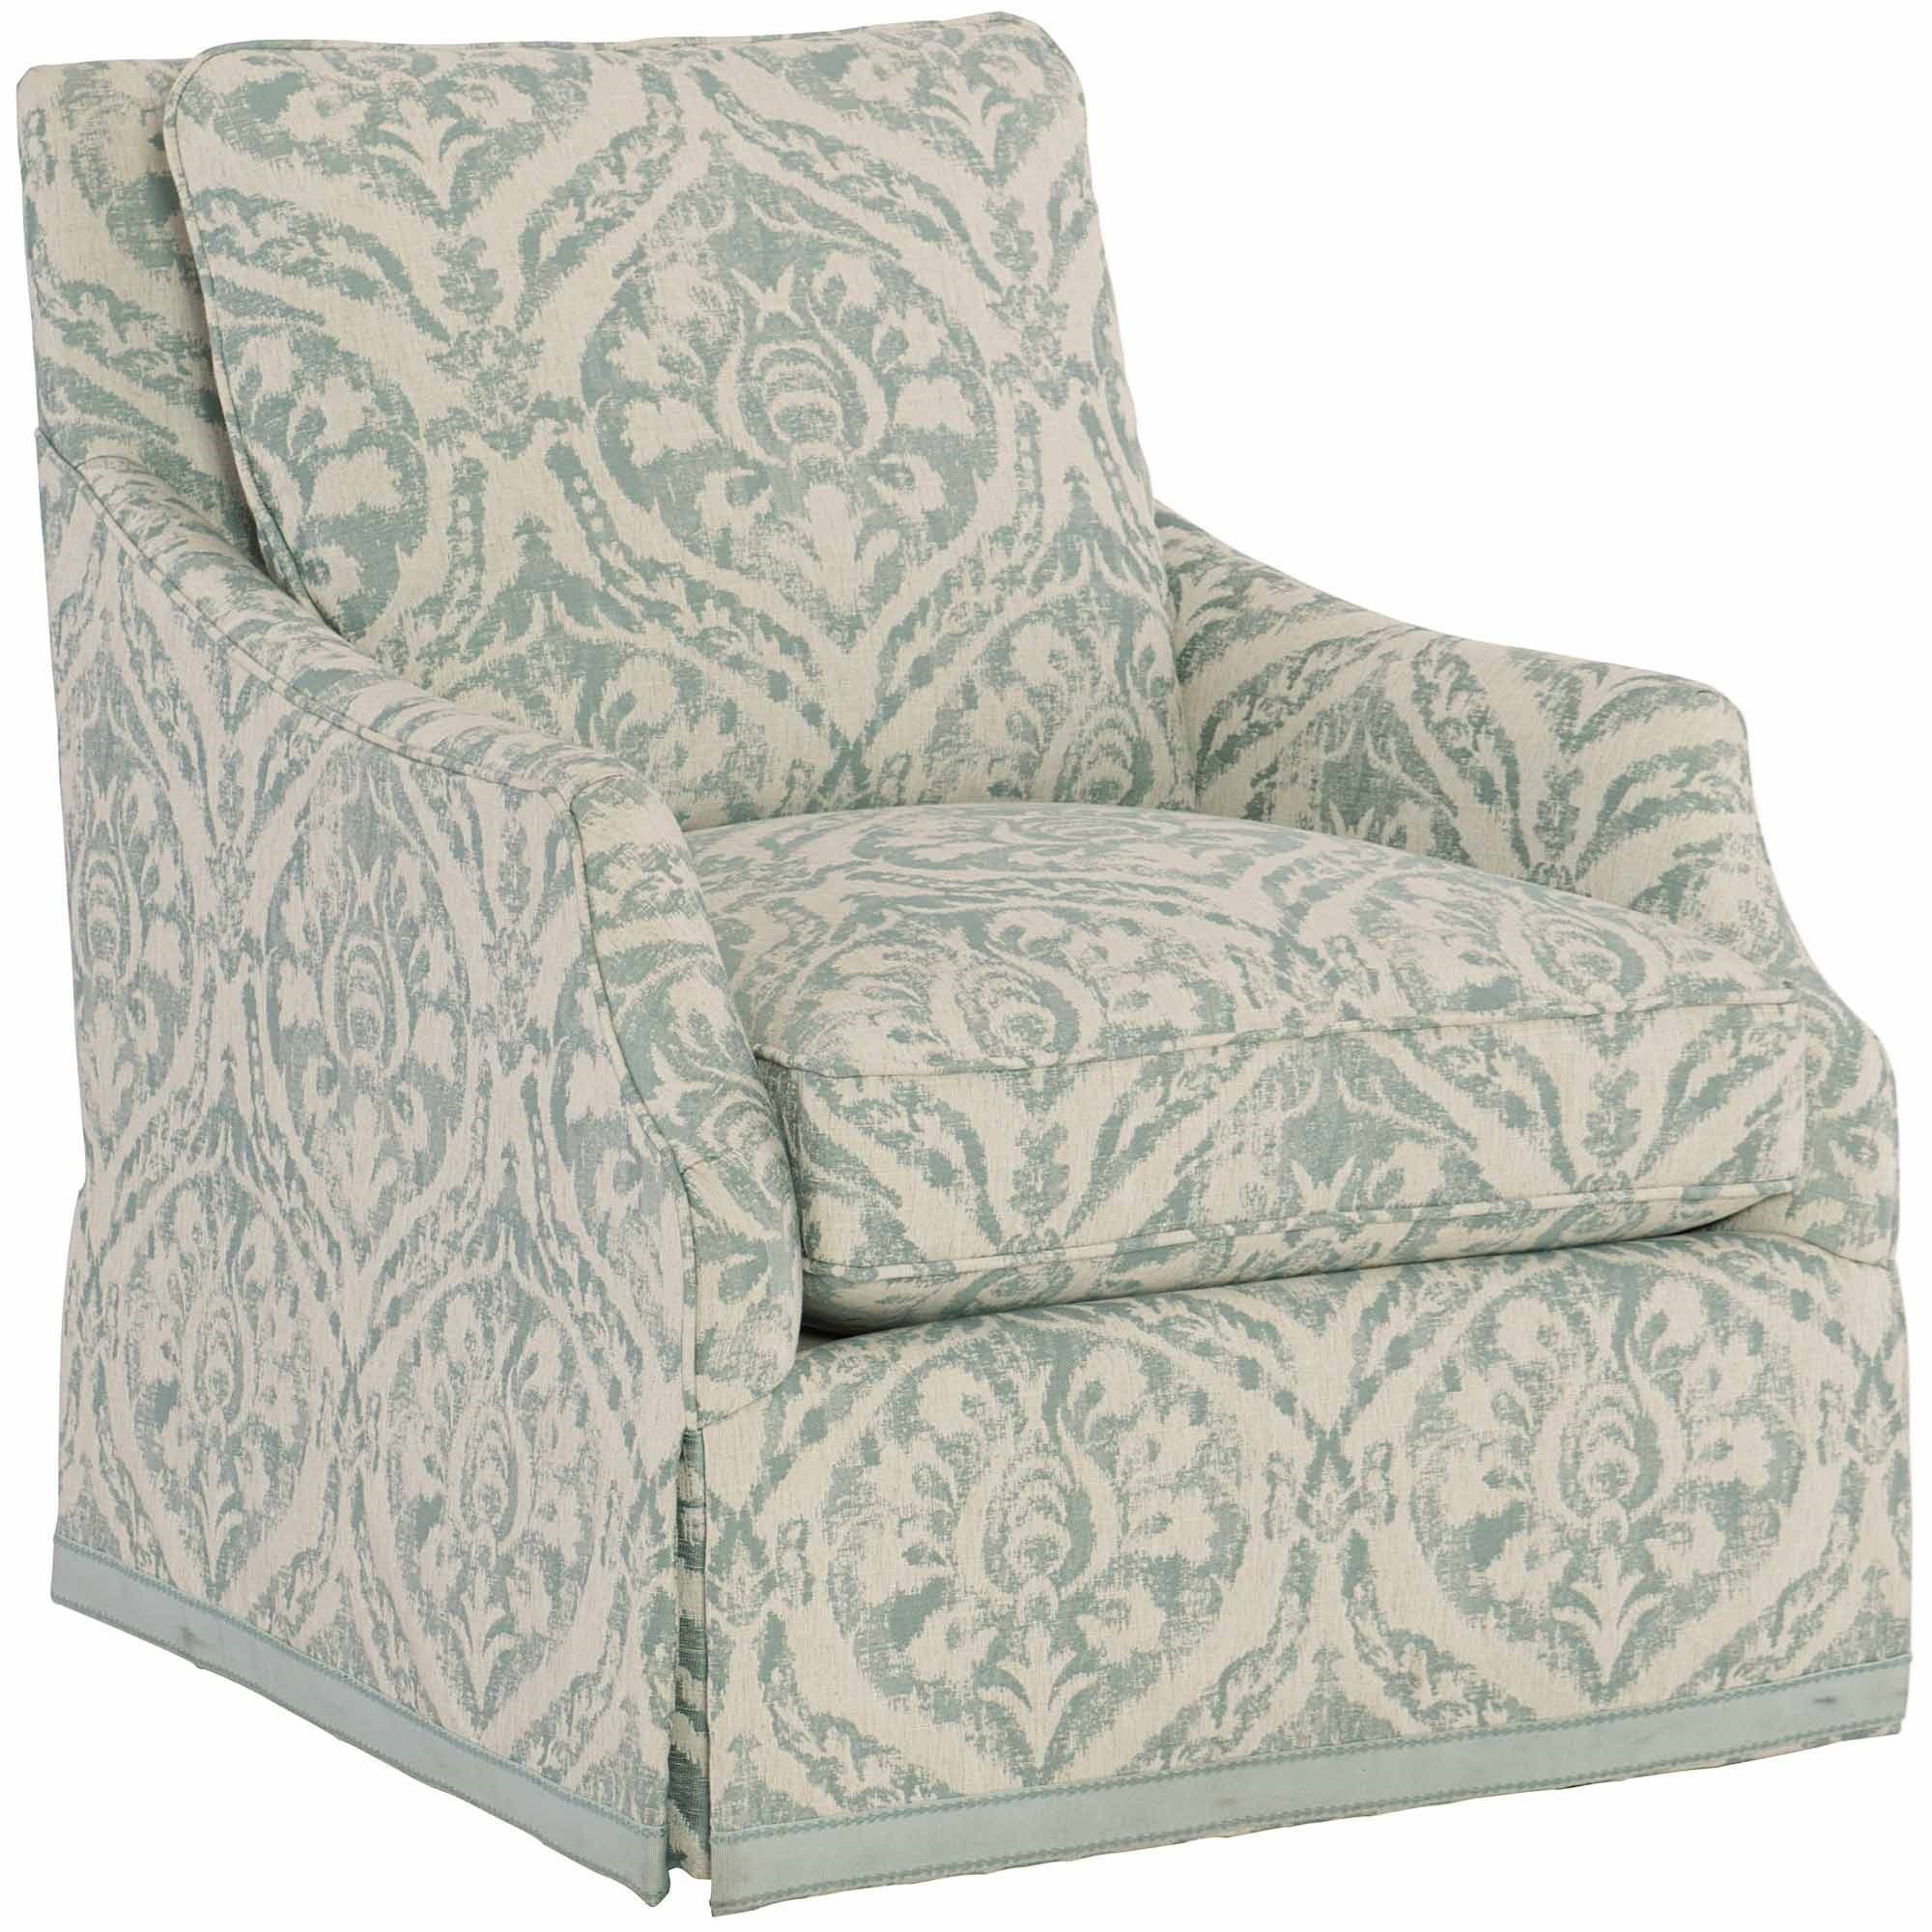 Delicieux Bernhardt Sabine Swivel Chair With Loose Back Cushion